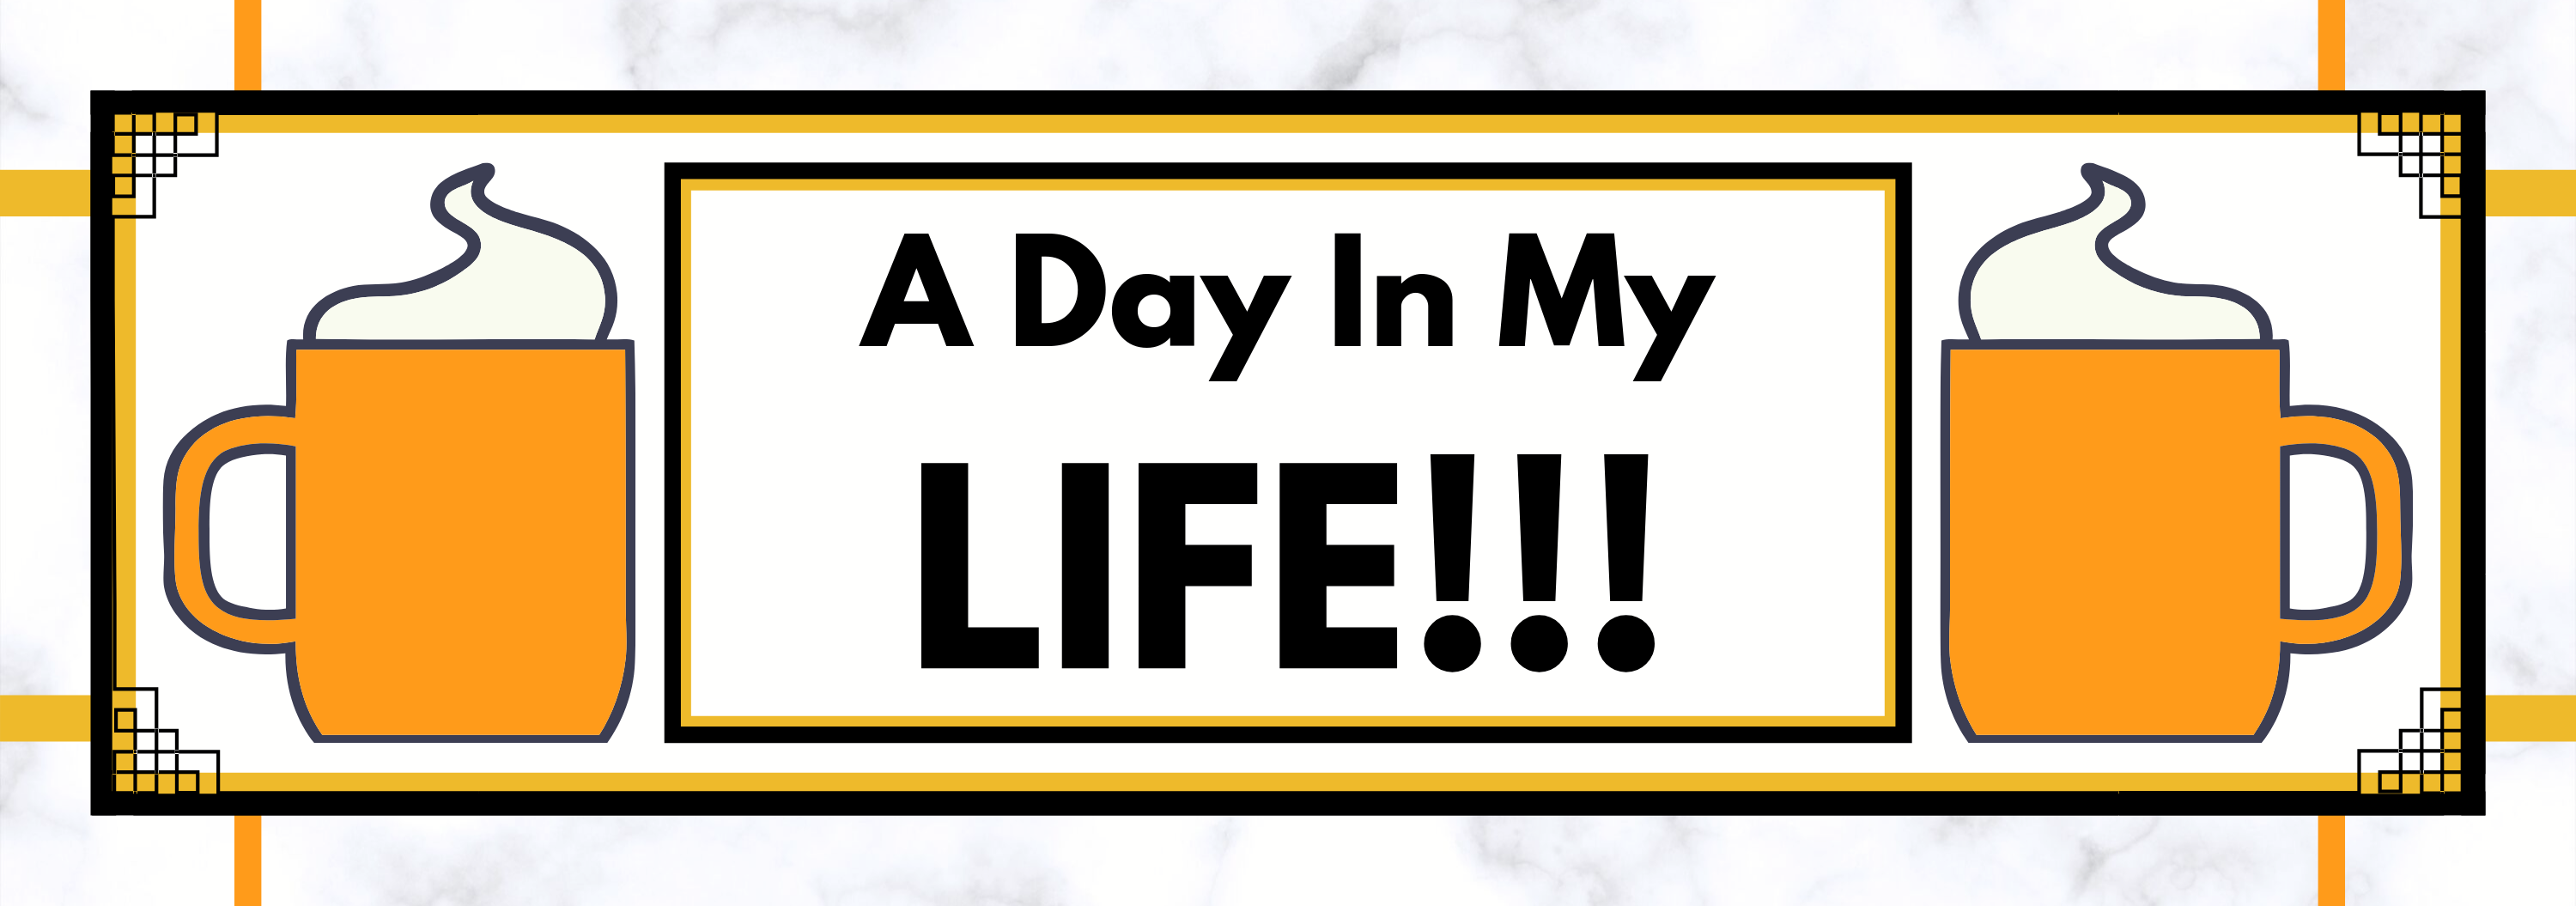 A Day In My.png